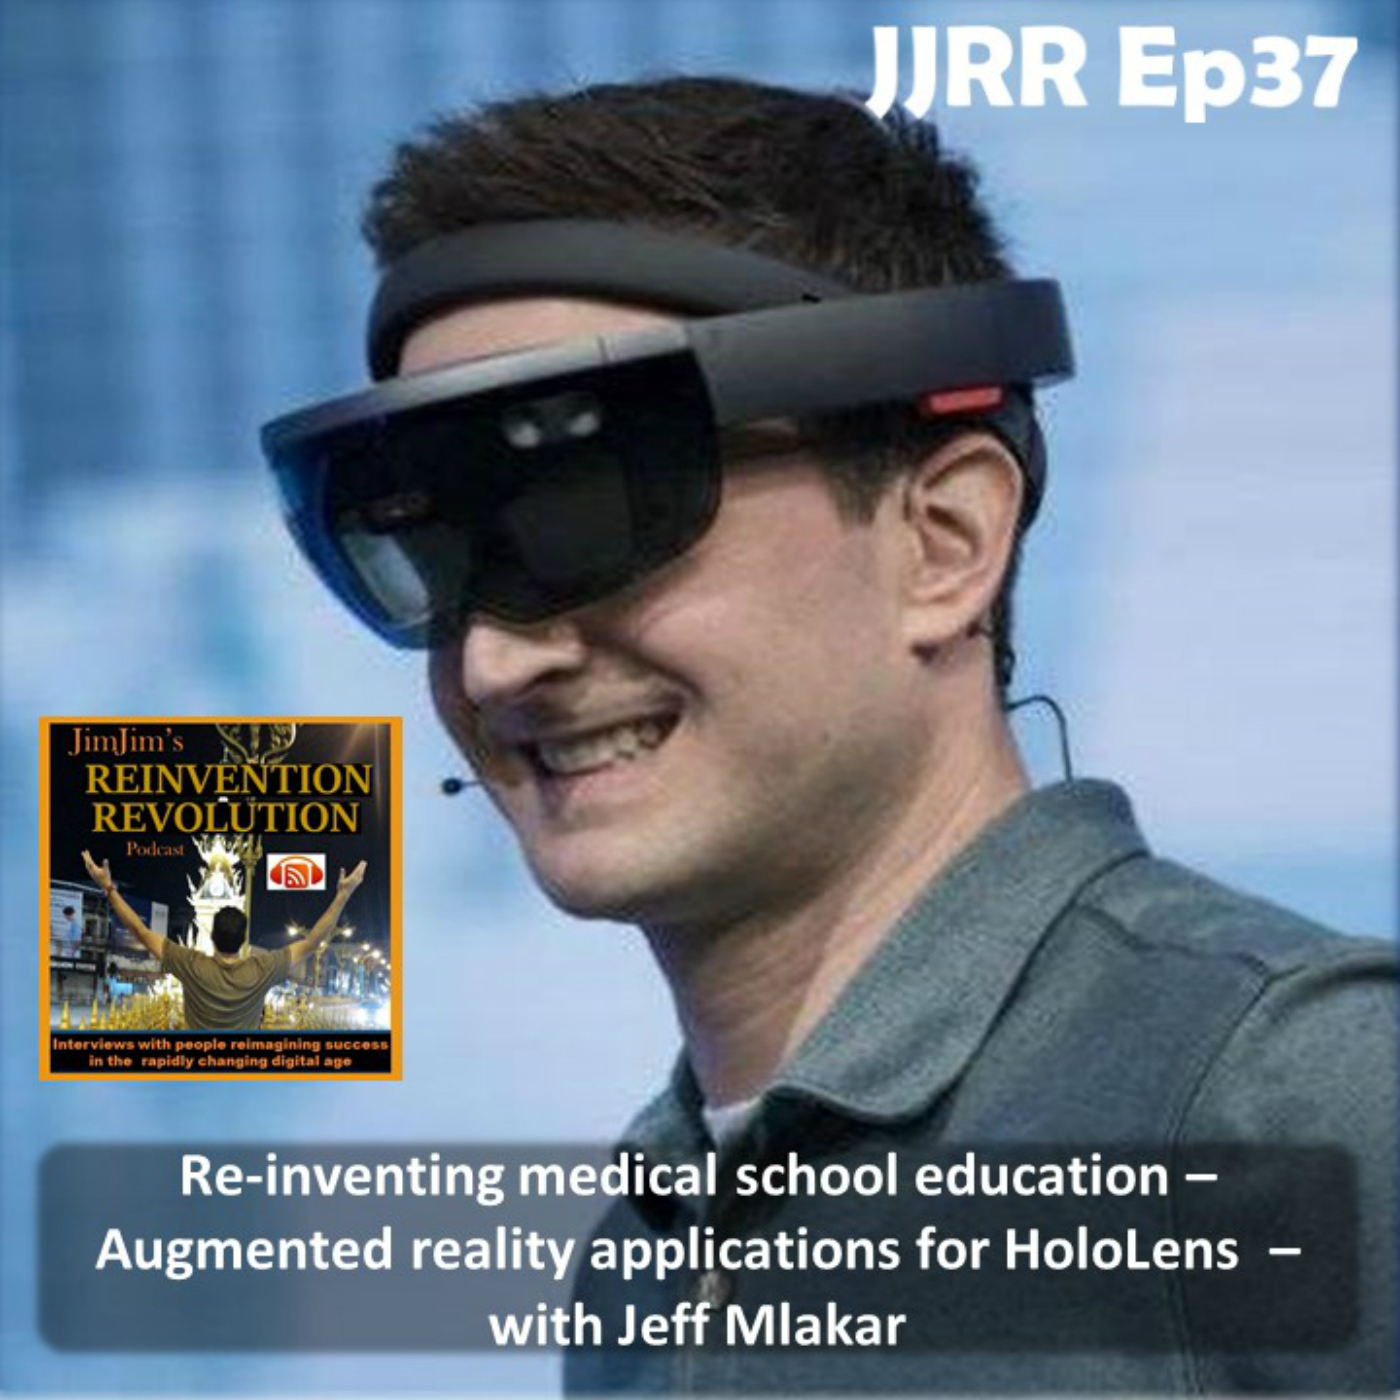 JJRR Ep37 Re-inventing medical school education – Augmented reality applications for HoloLens – with Jeff Mlakar